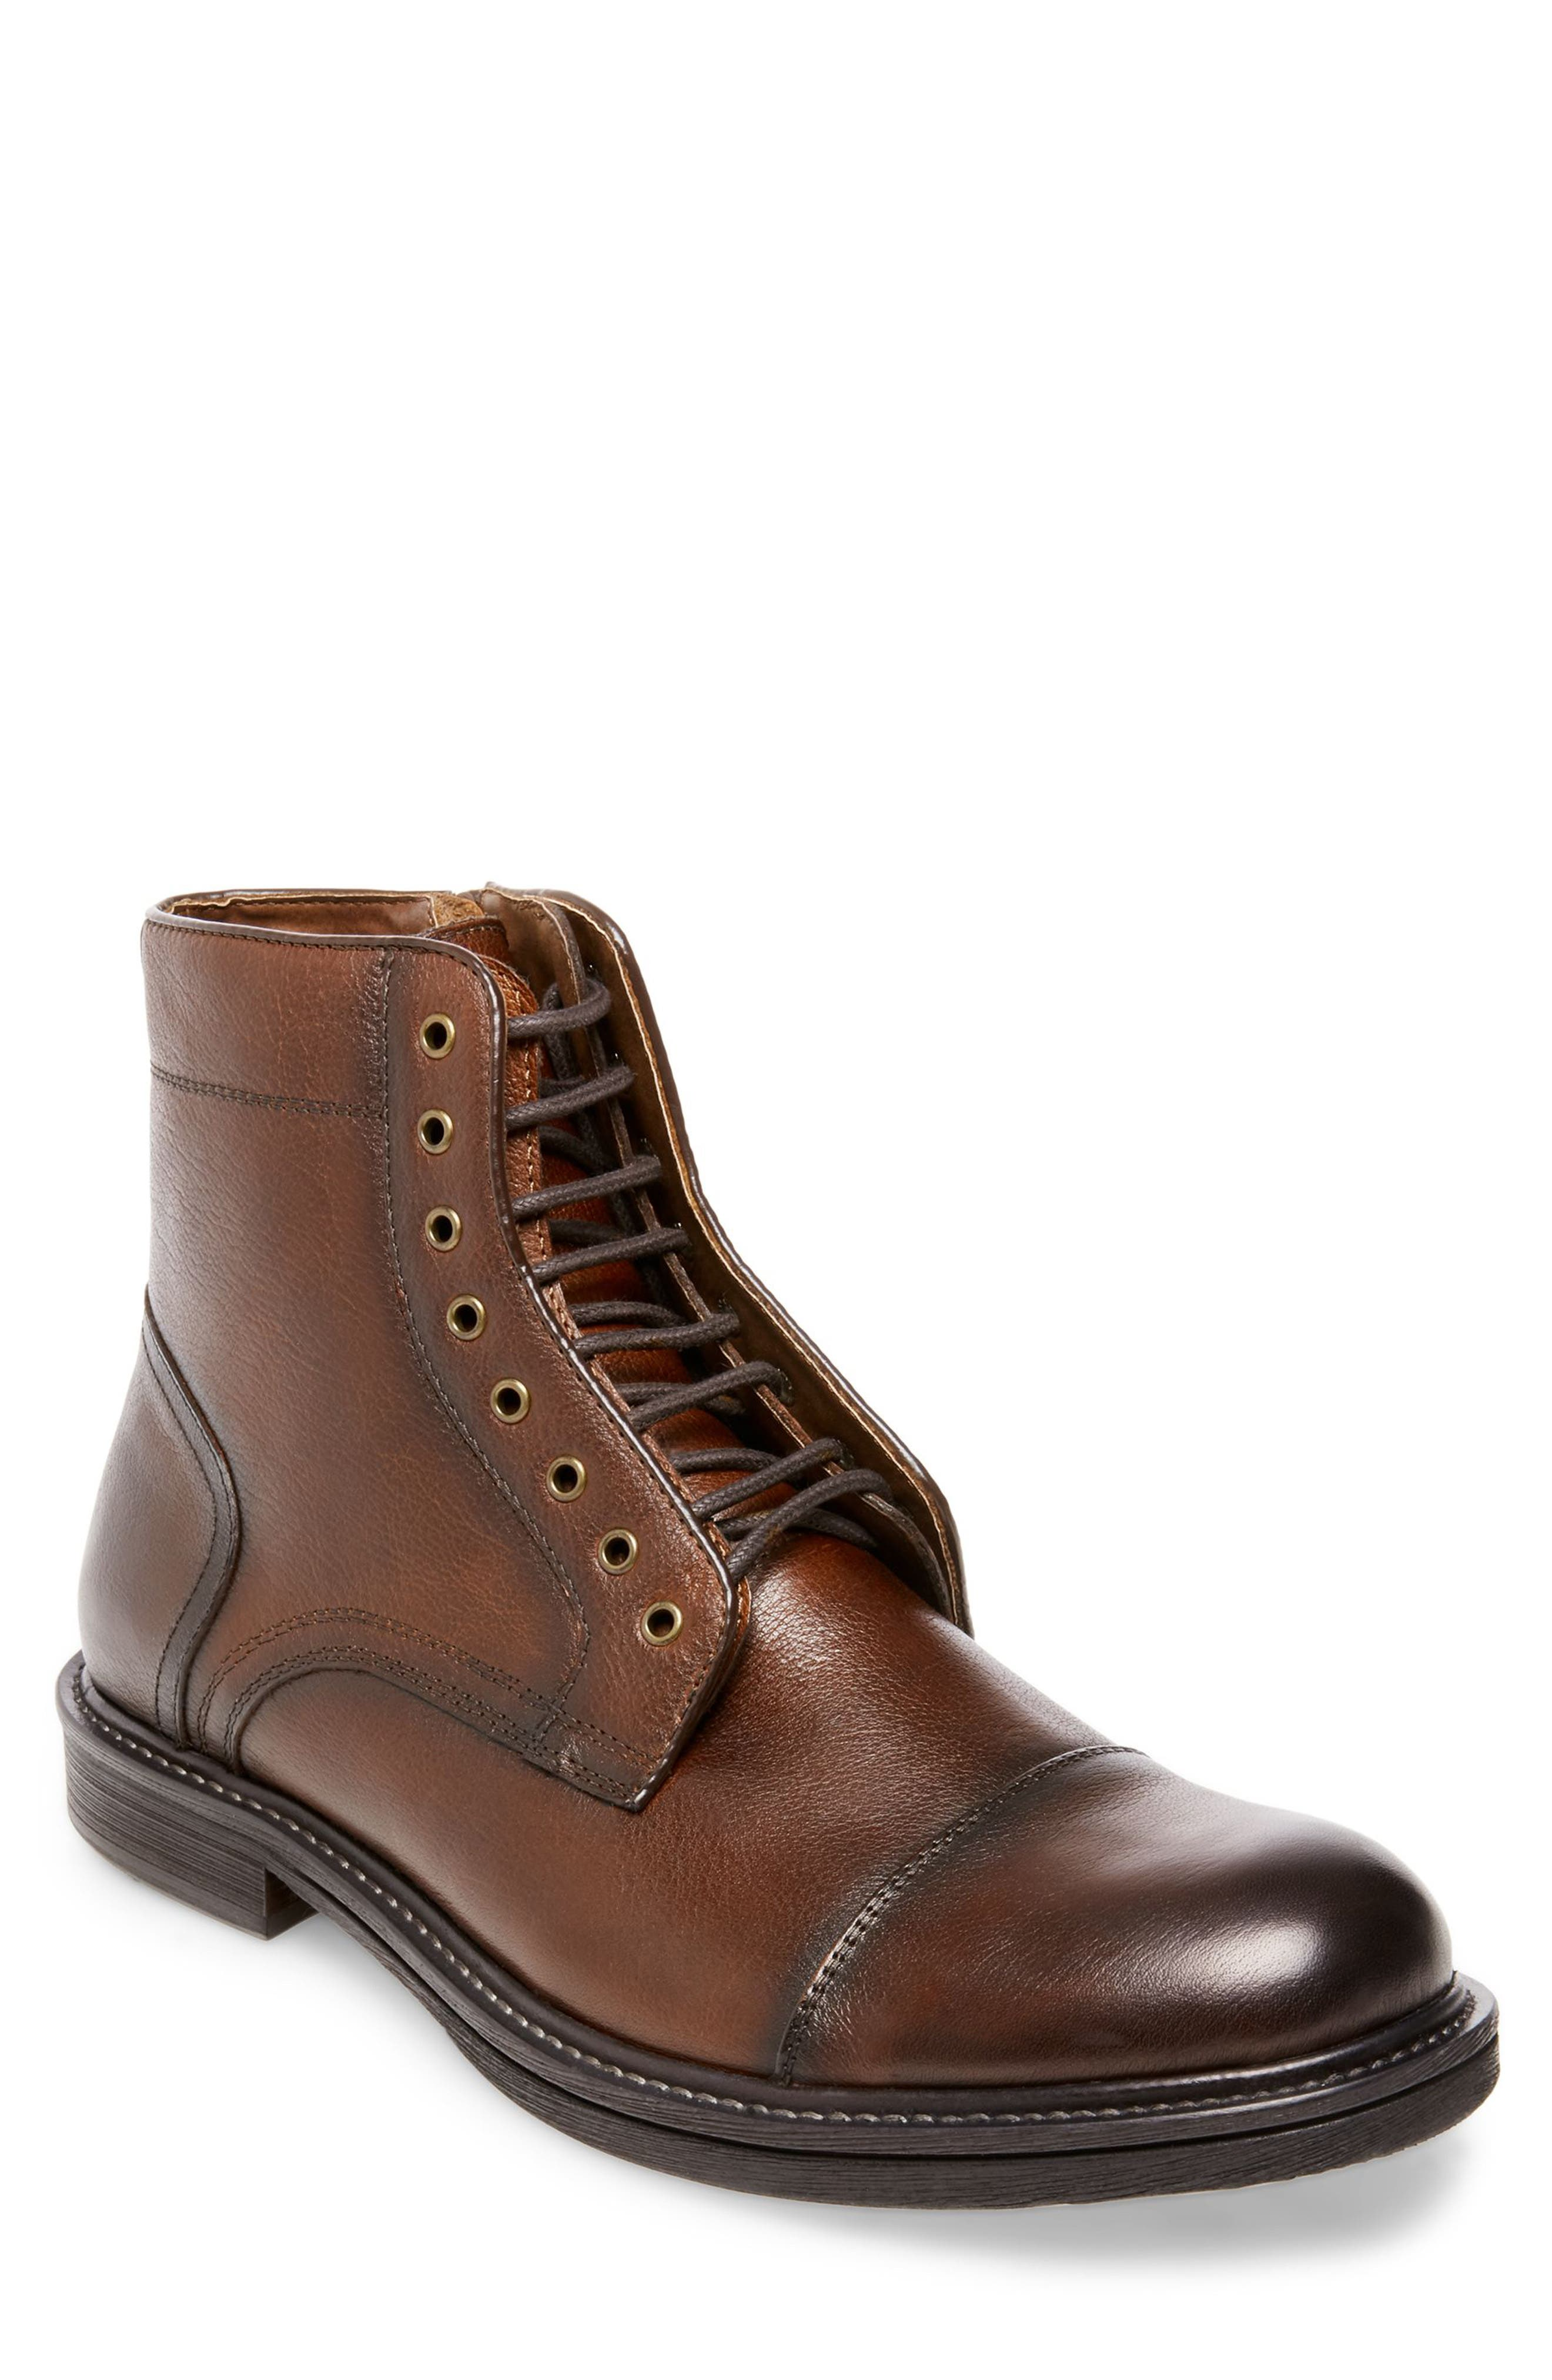 Chariot Boot,                             Main thumbnail 1, color,                             COGNAC LEATHER